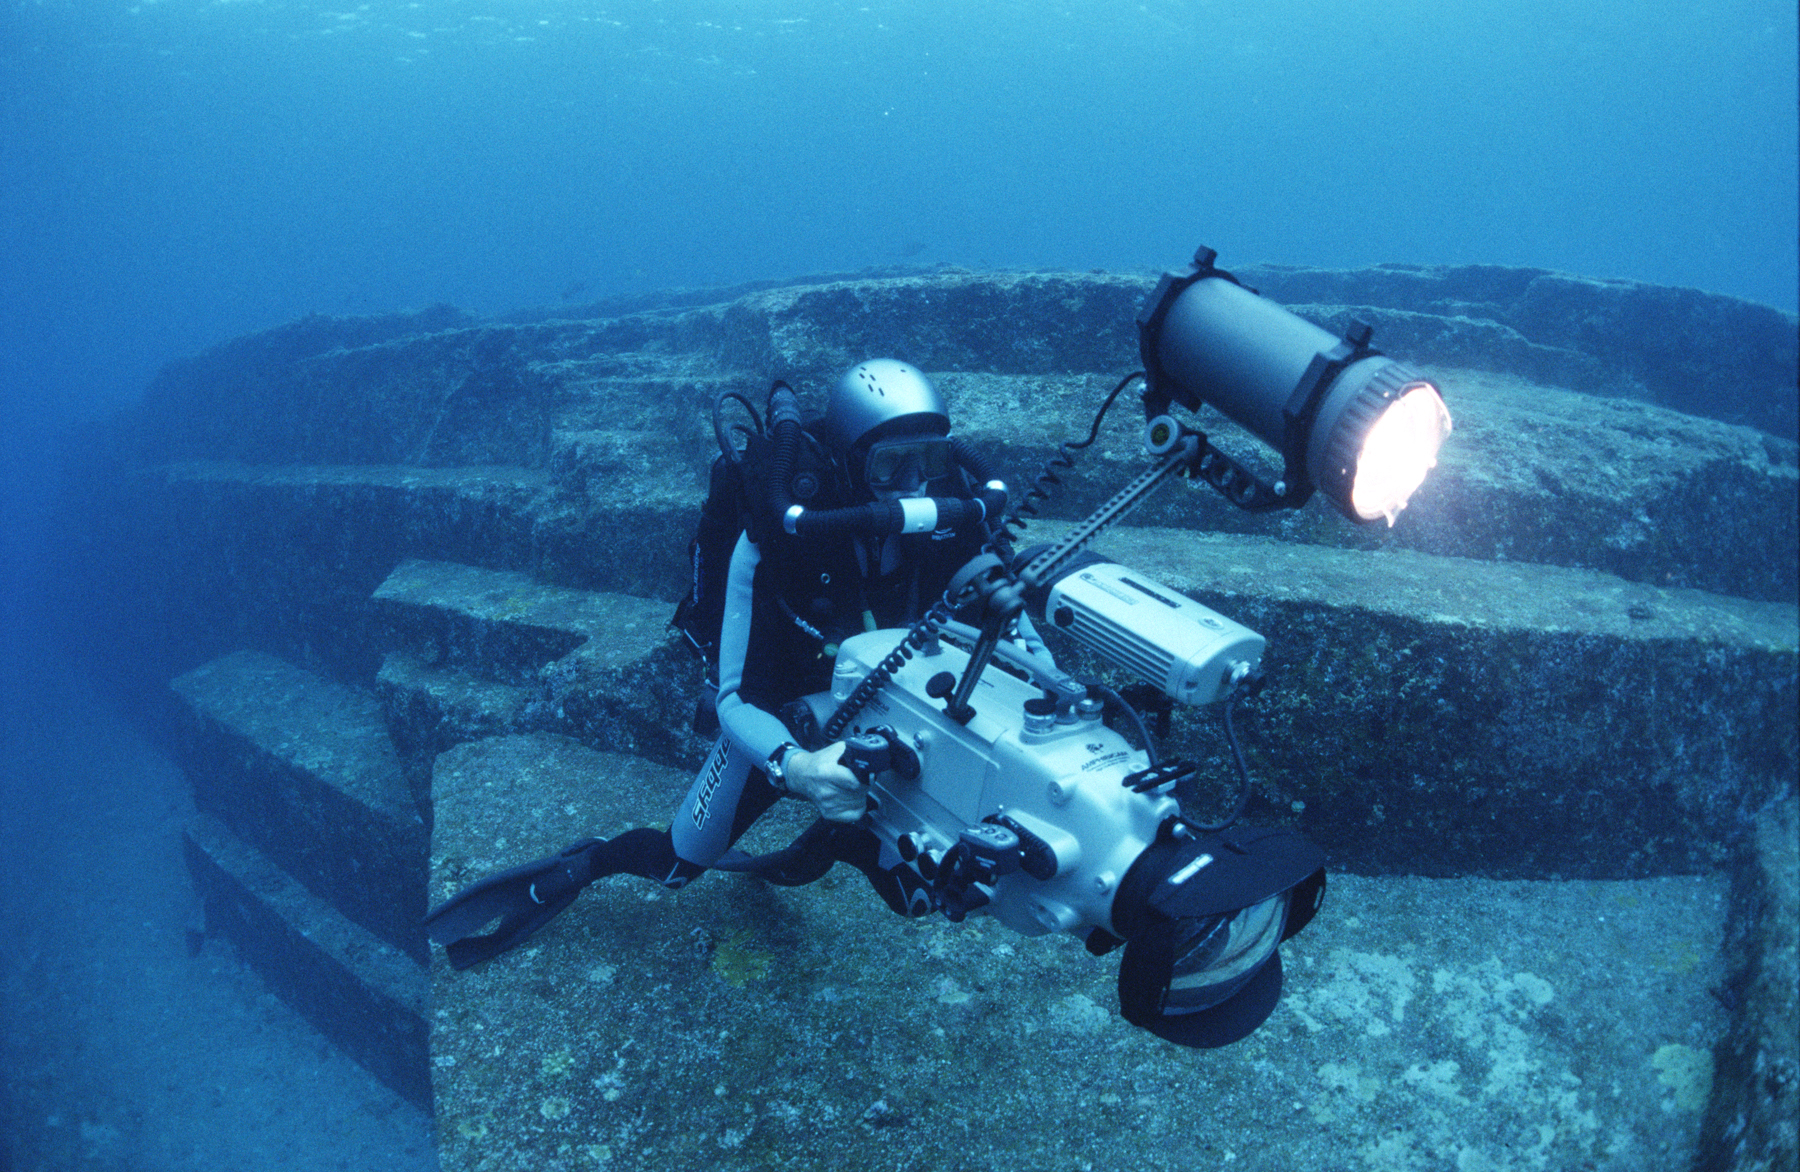 Filming with the Sony F900 HD camera in Yonoguni, Japan